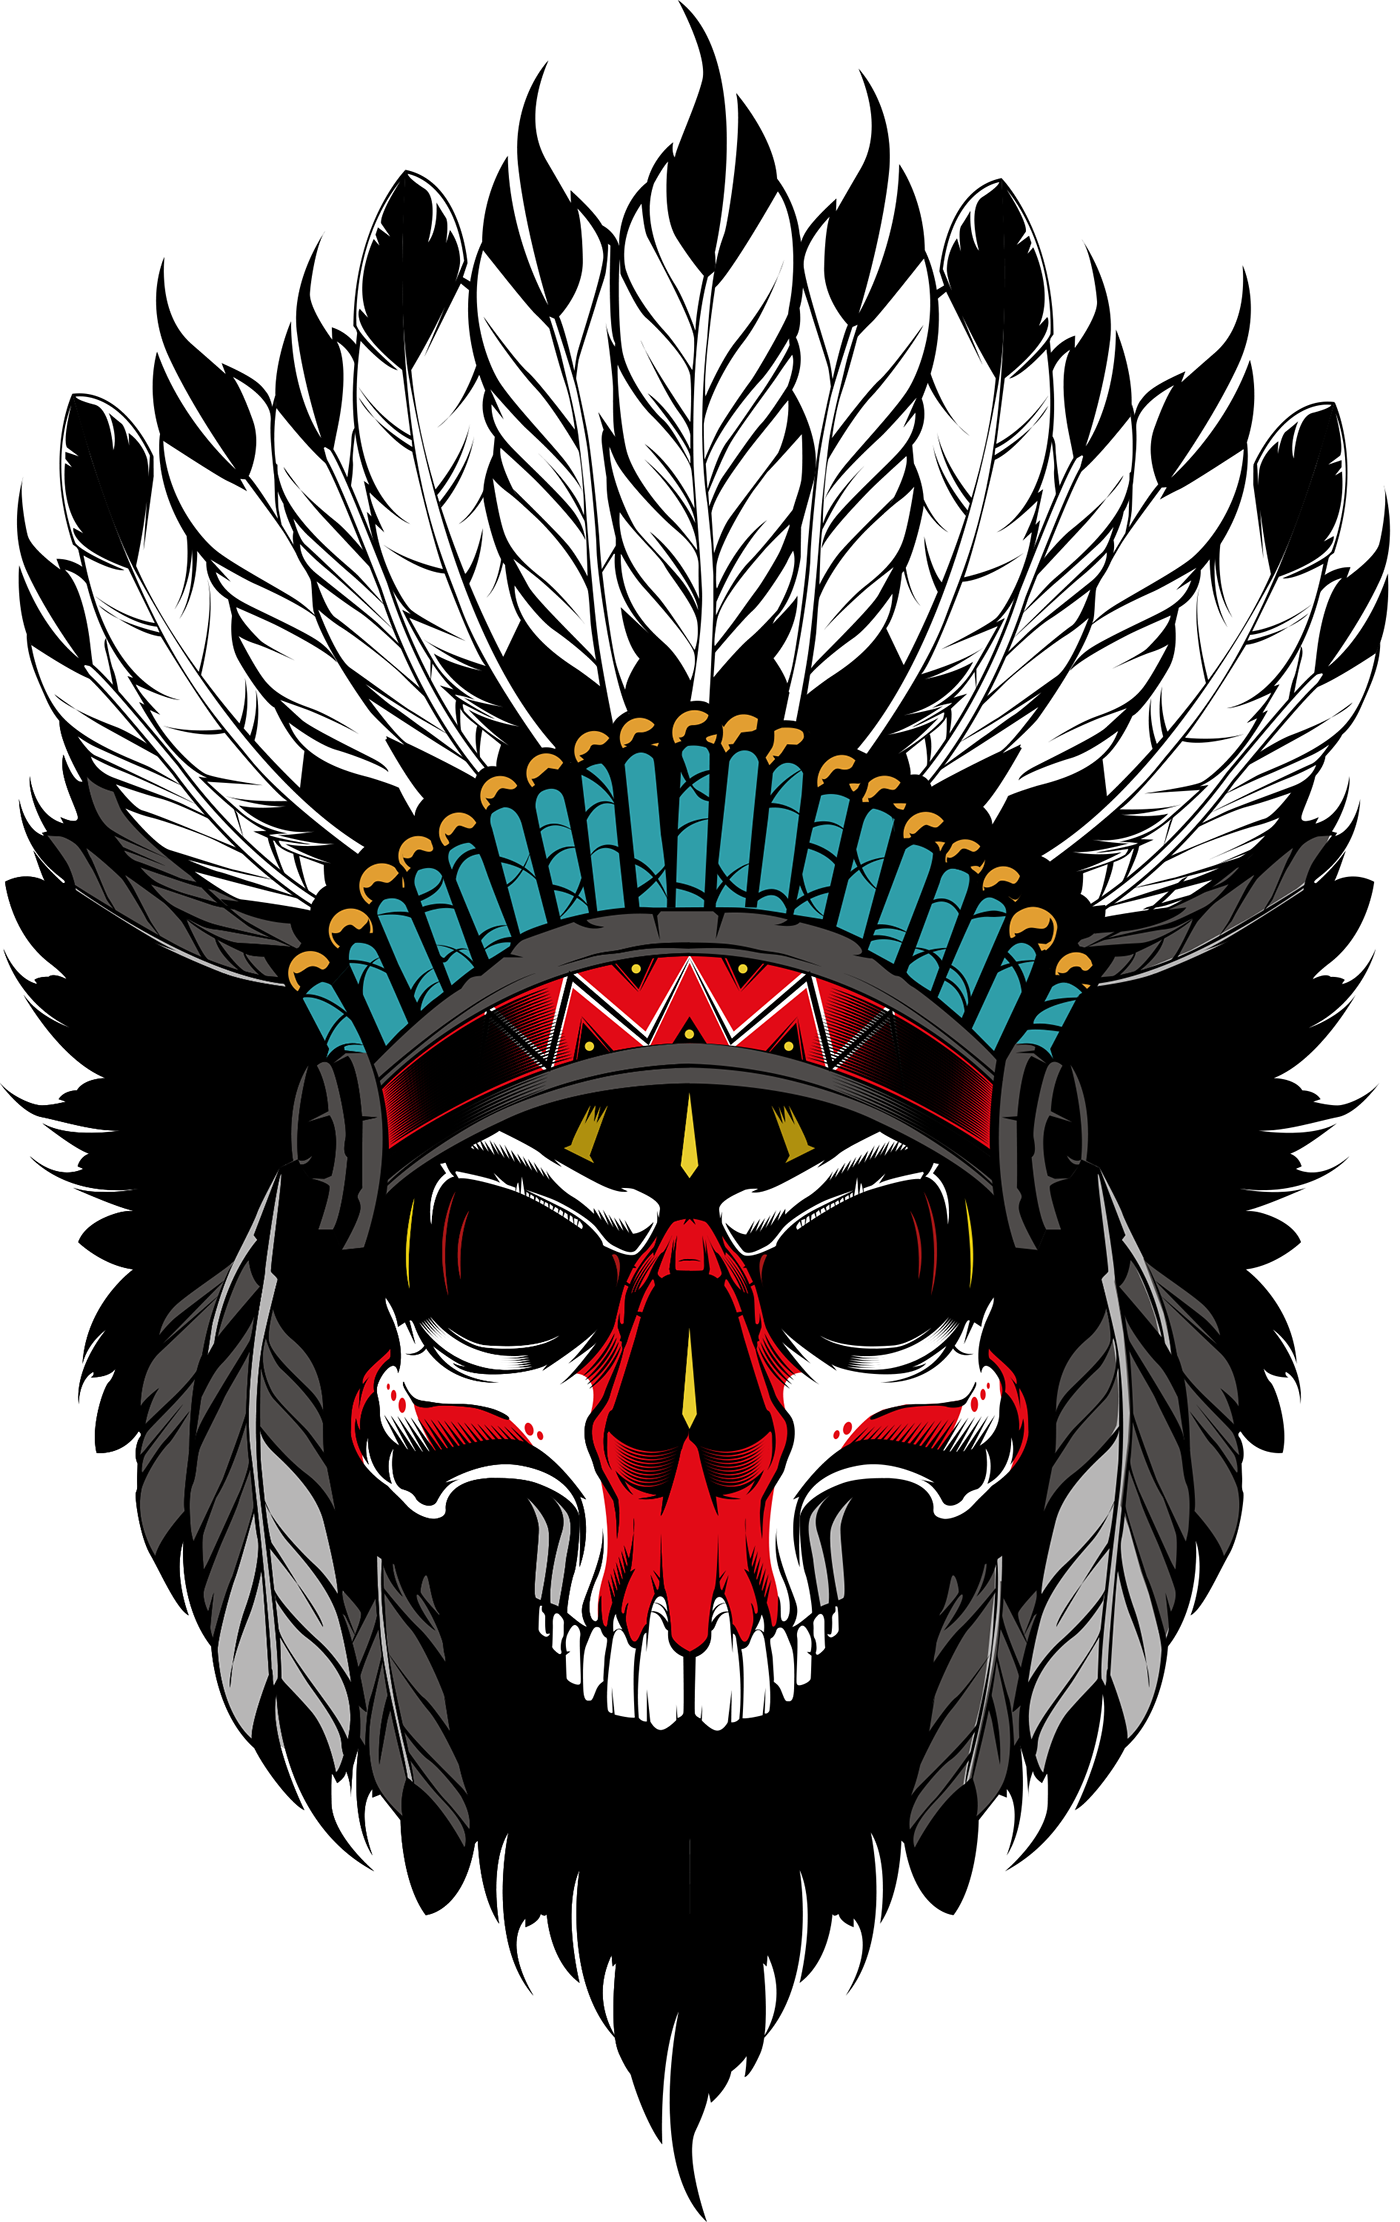 Tattoo skull png. Indian s on behance